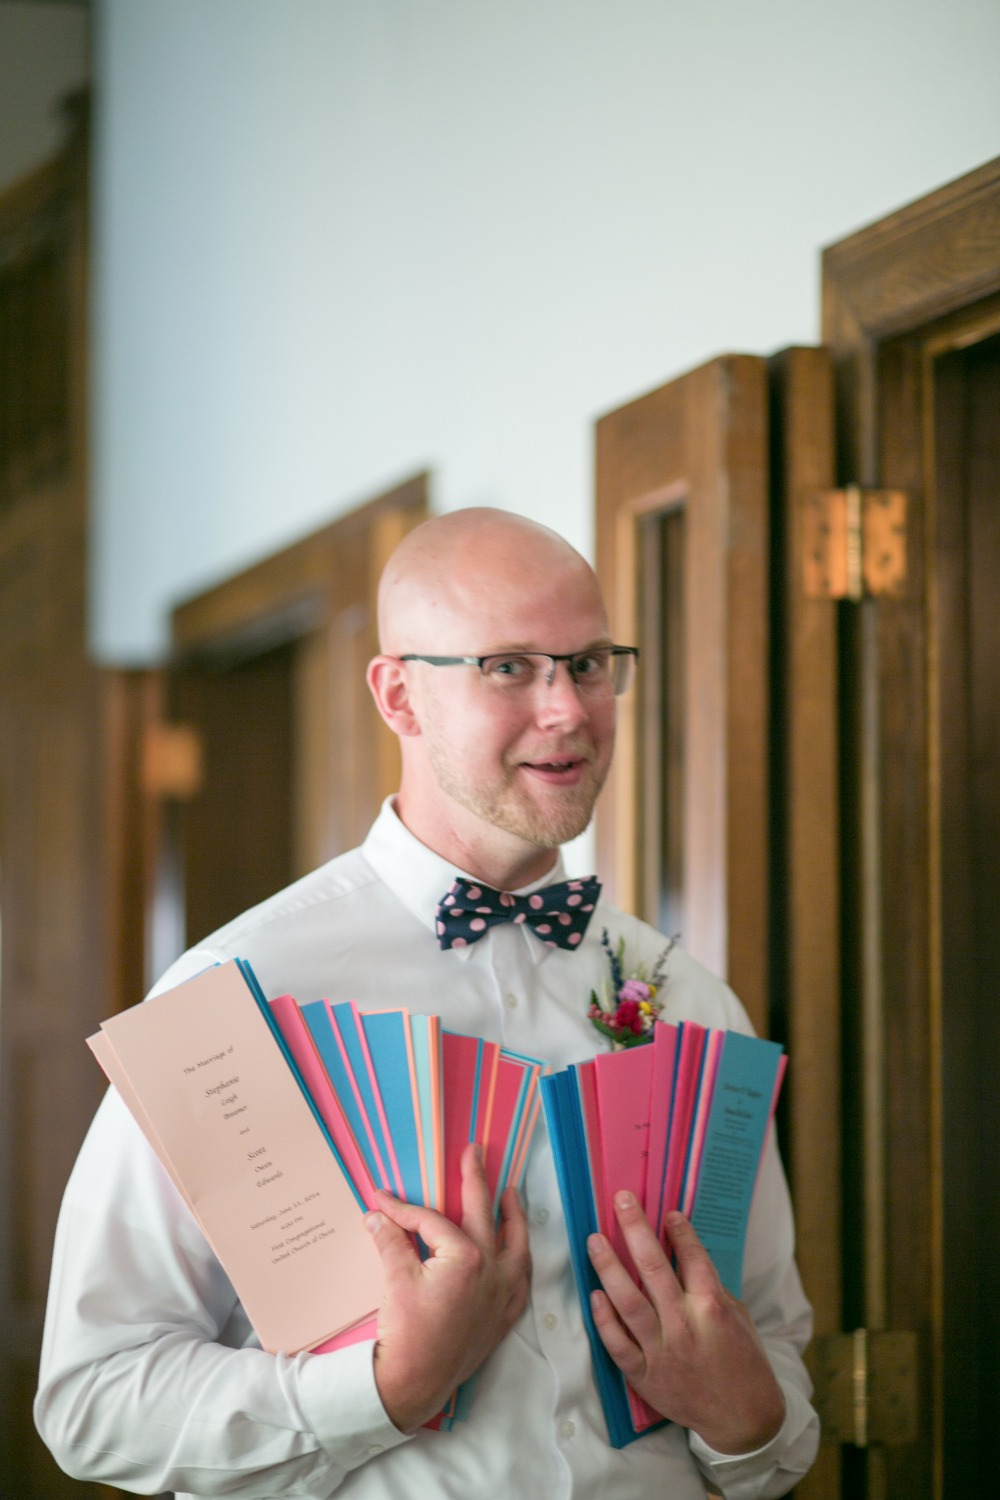 handing out wedding programs